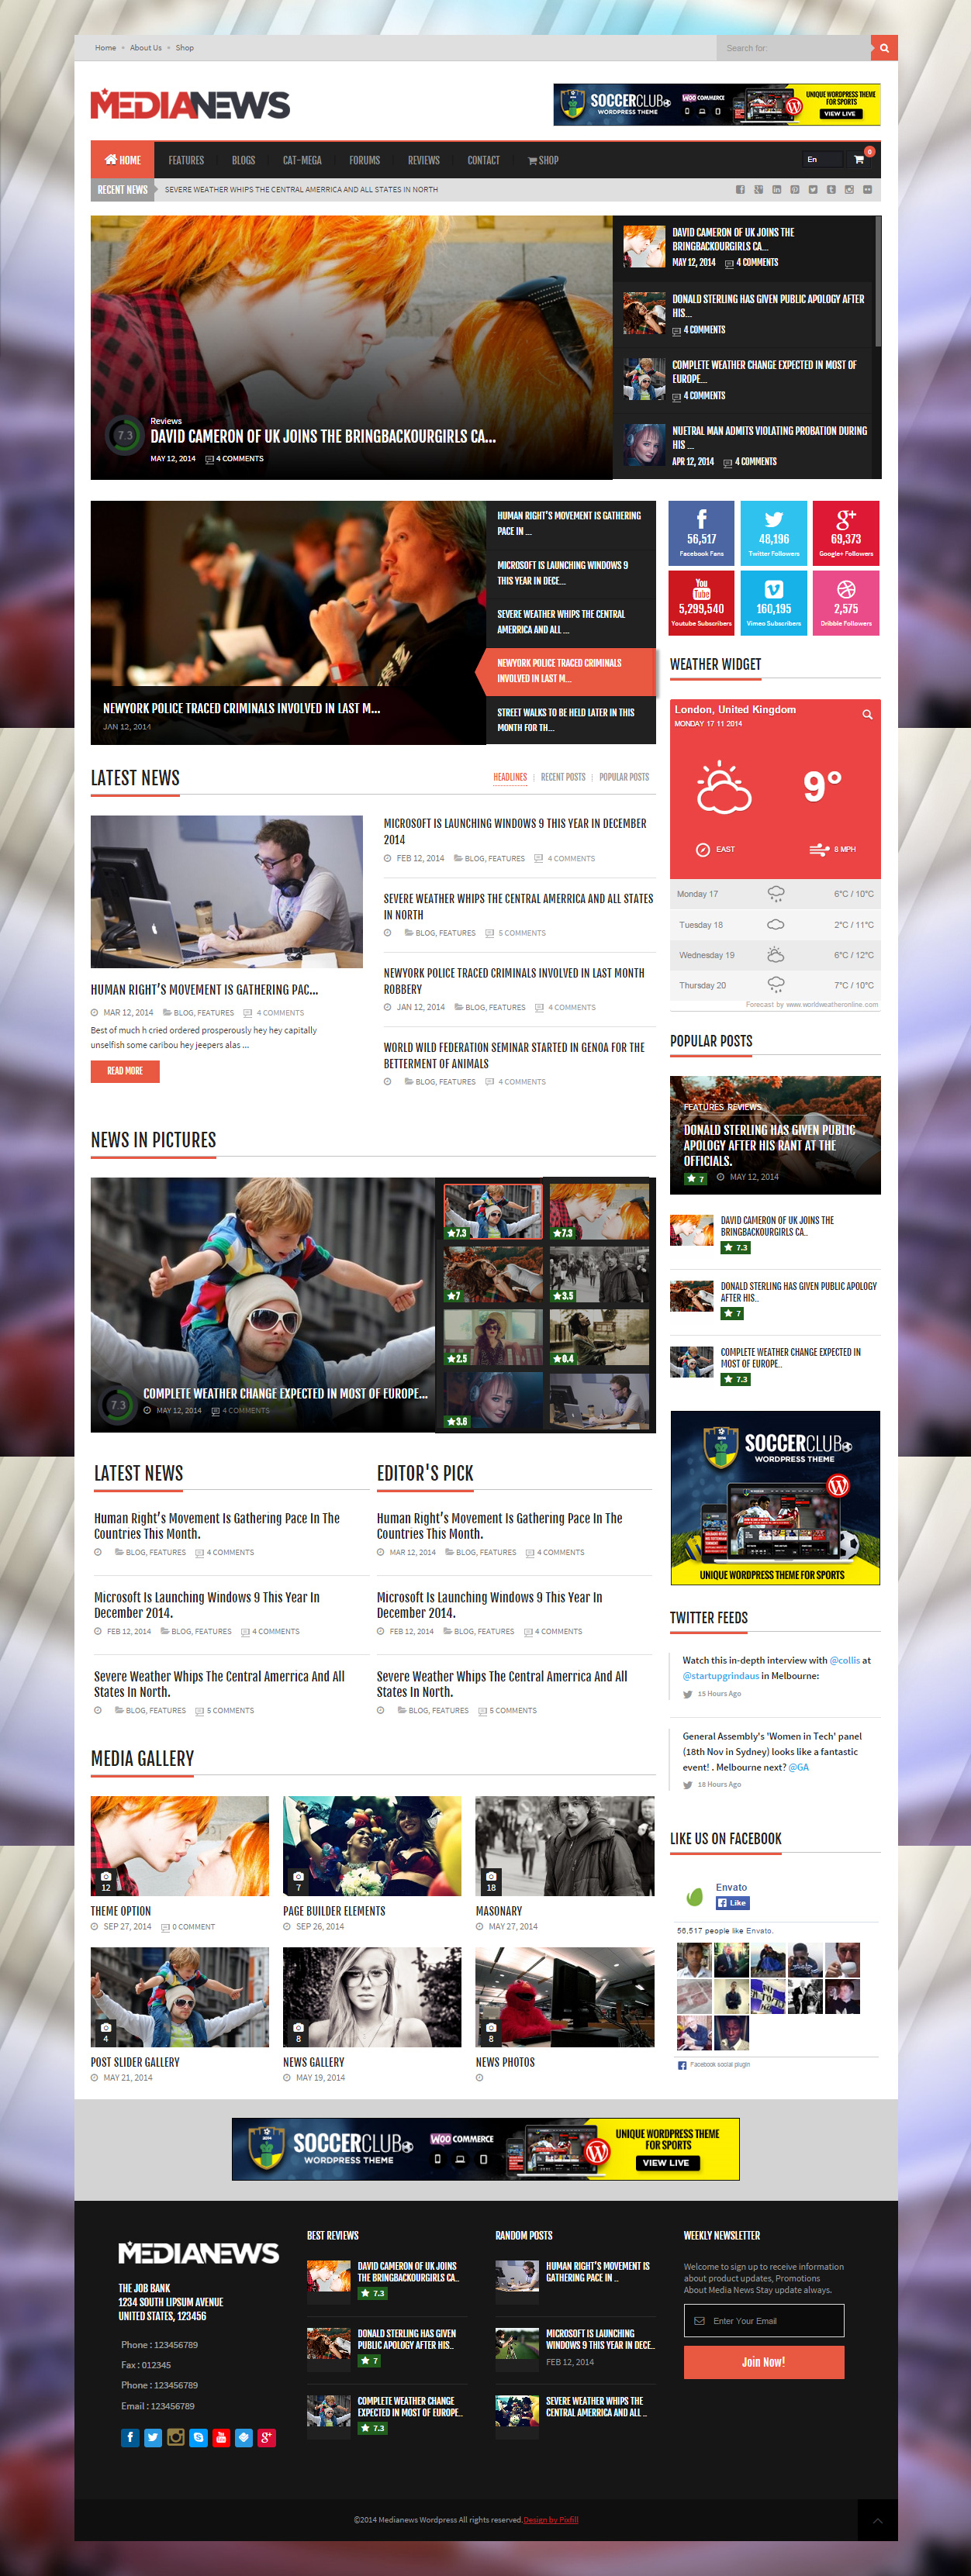 30+ Best Responsive Wordpress News and Magazine Themes in 2014 ...